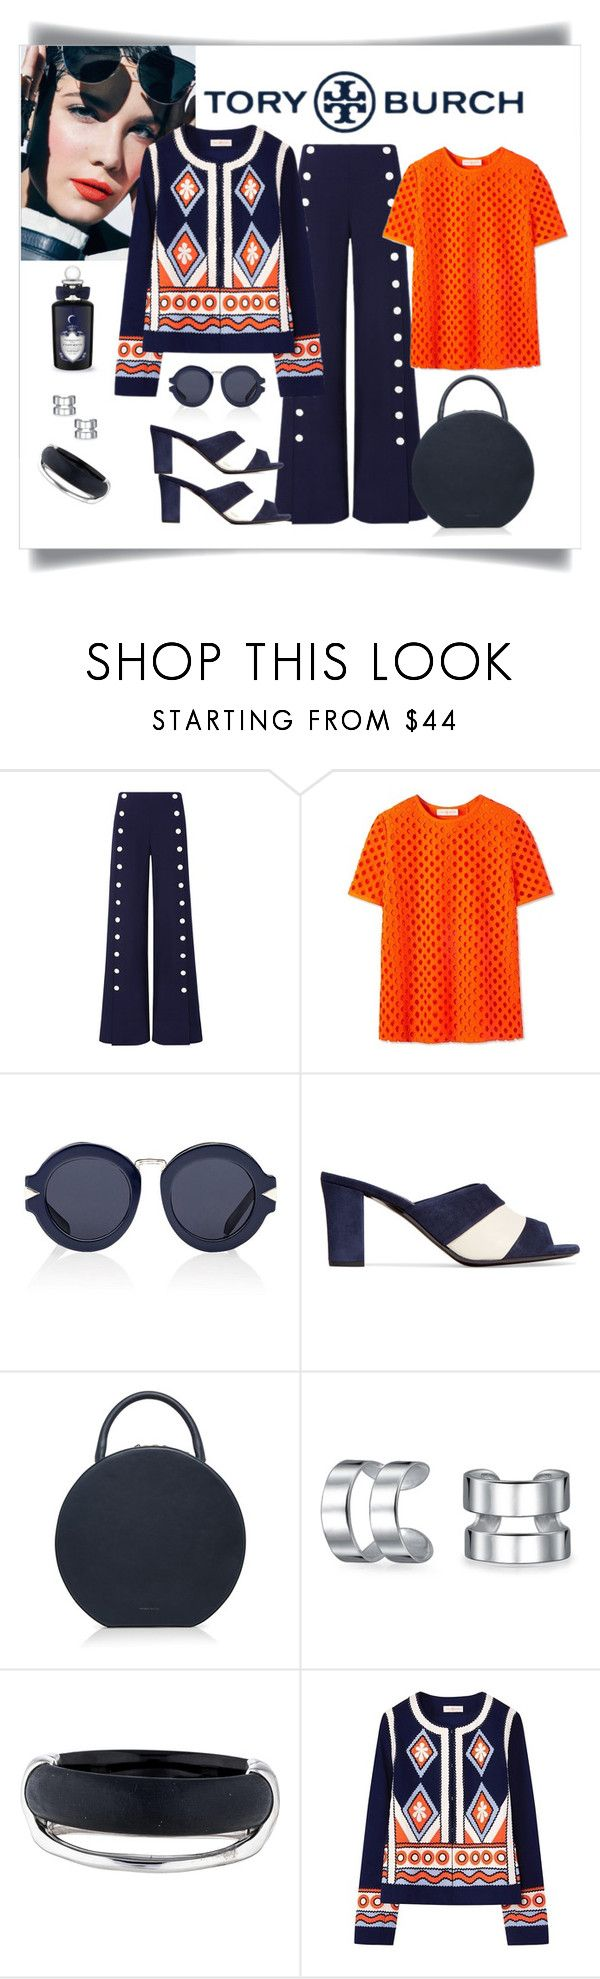 """Tory Burch Marilyn Jacket, Pant & Tee"" by romaboots-1 ❤ liked on Polyvore featuring Tory Burch, Karen Walker, Jil Sander, Bling Jewelry, Alexis Bittar and PENHALIGON'S"